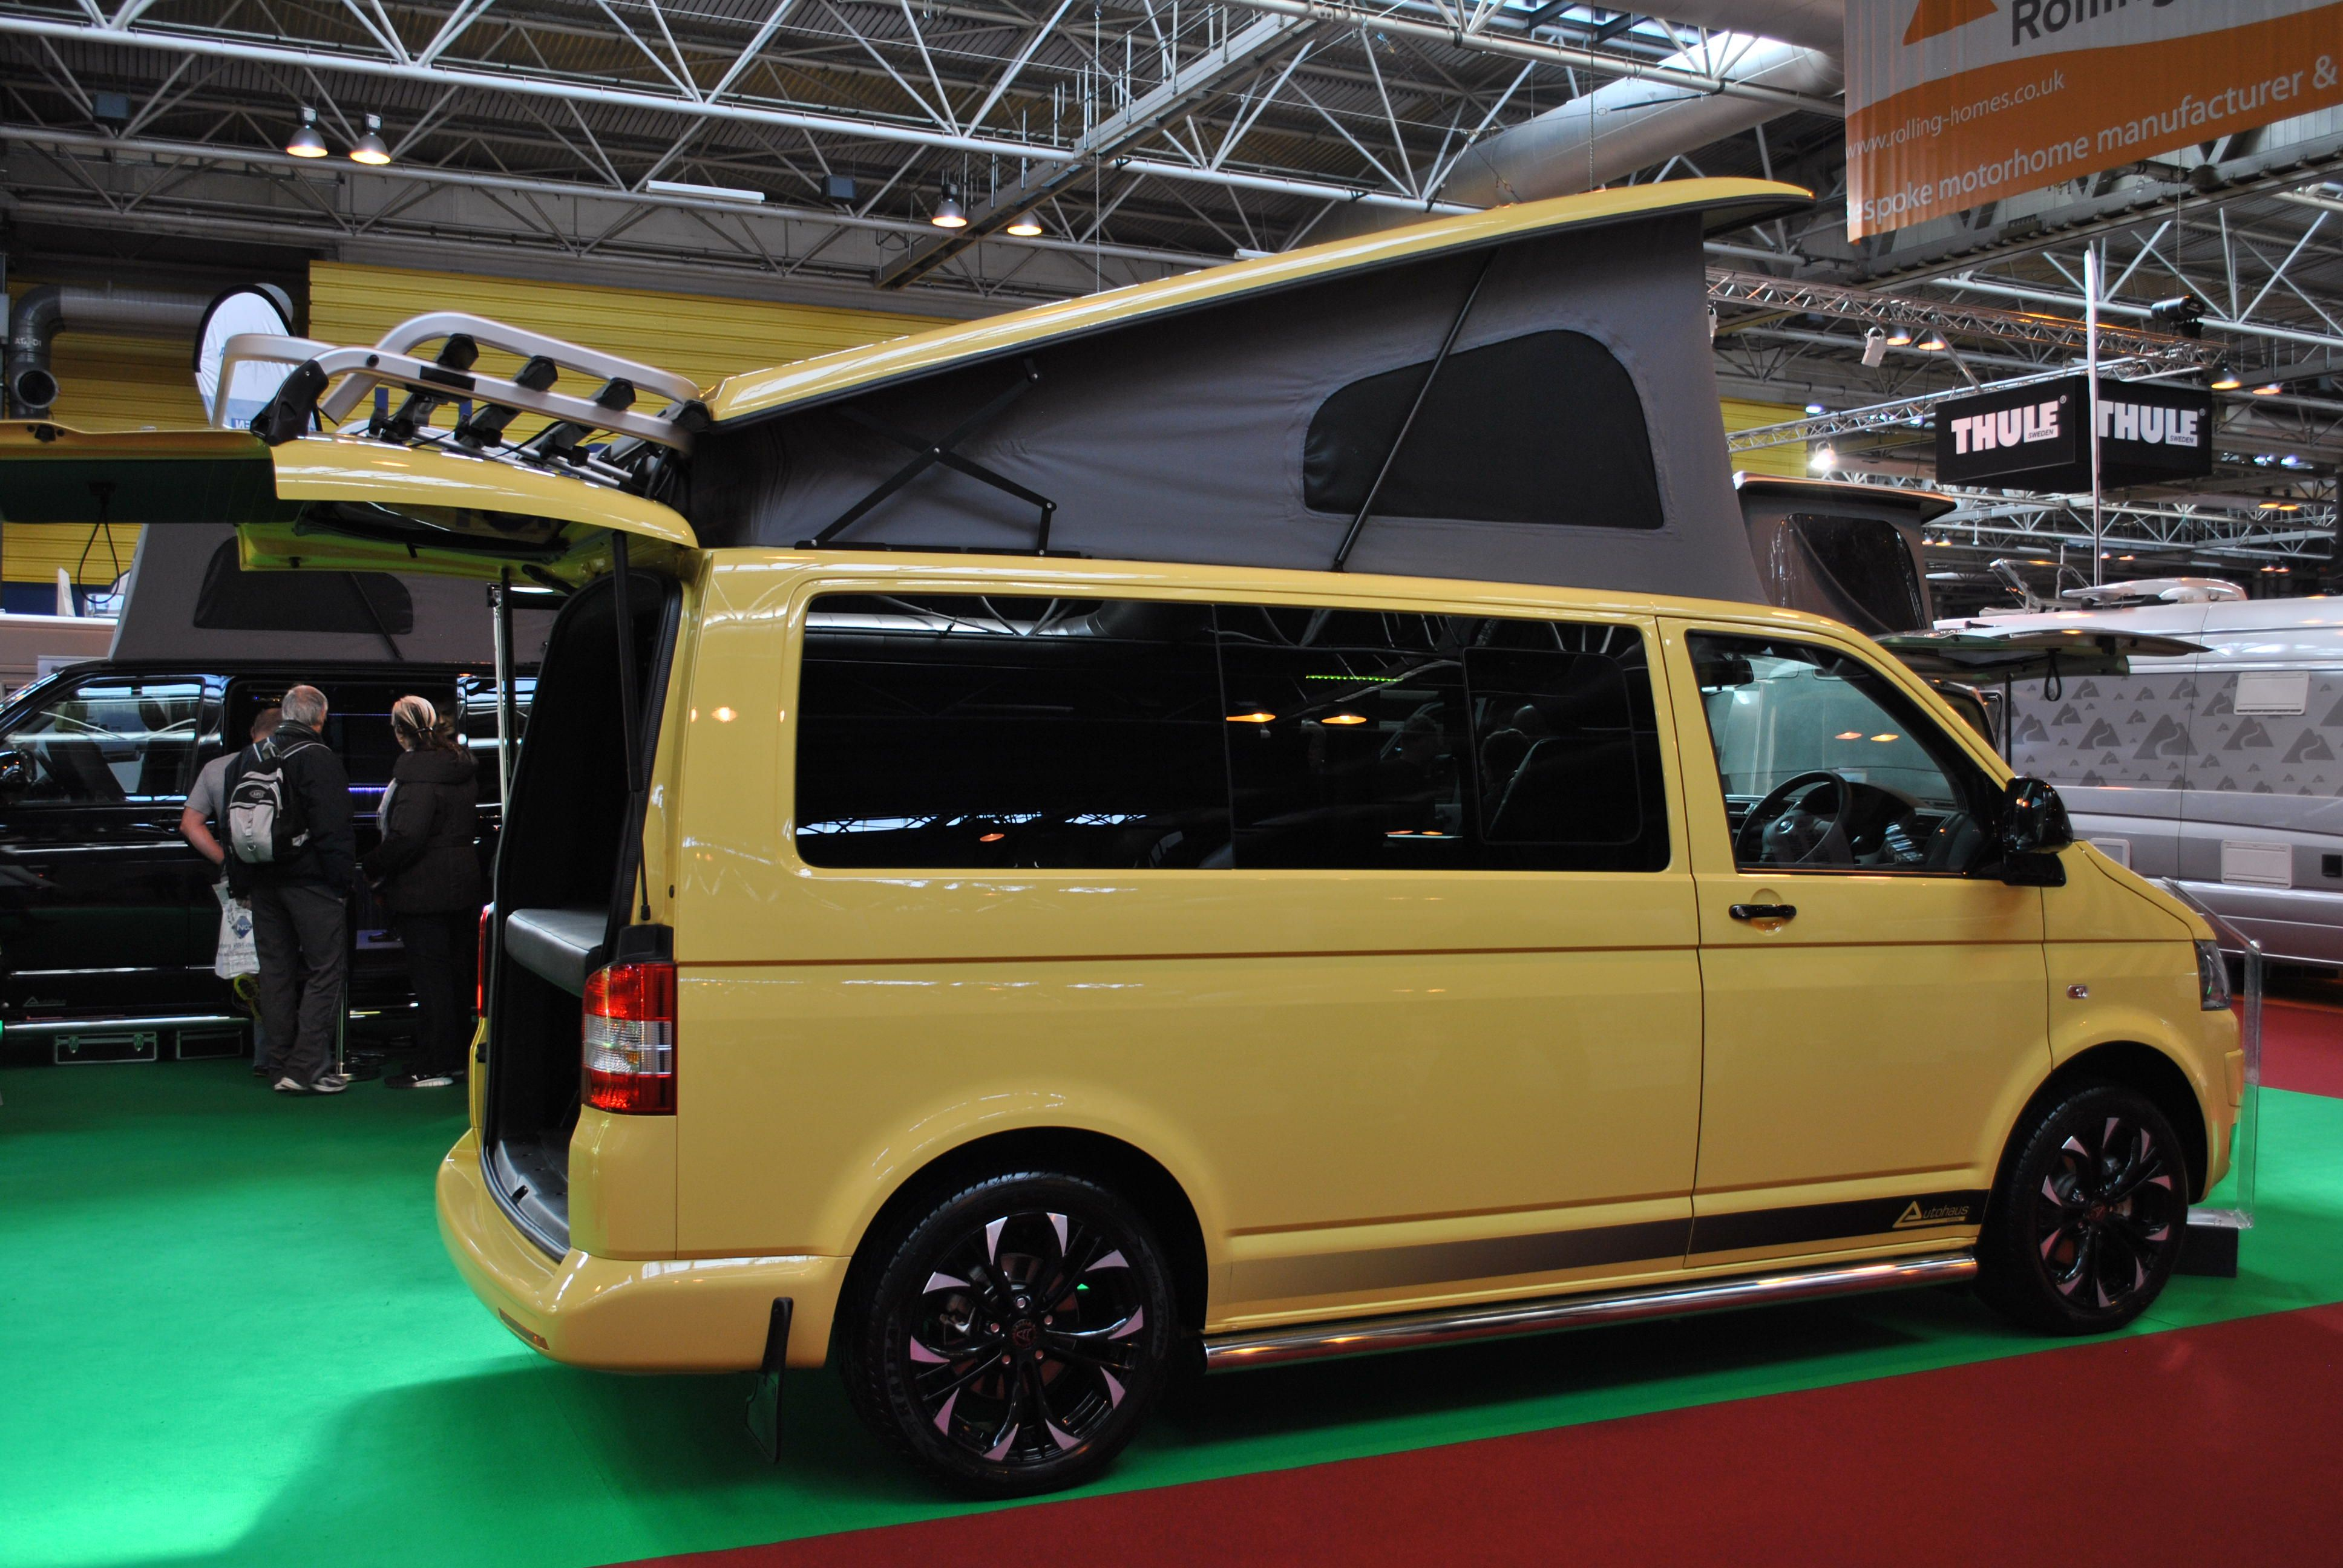 Glossop Awnings On Twitter Mellow Yellow VW T5 Traveller Campervan